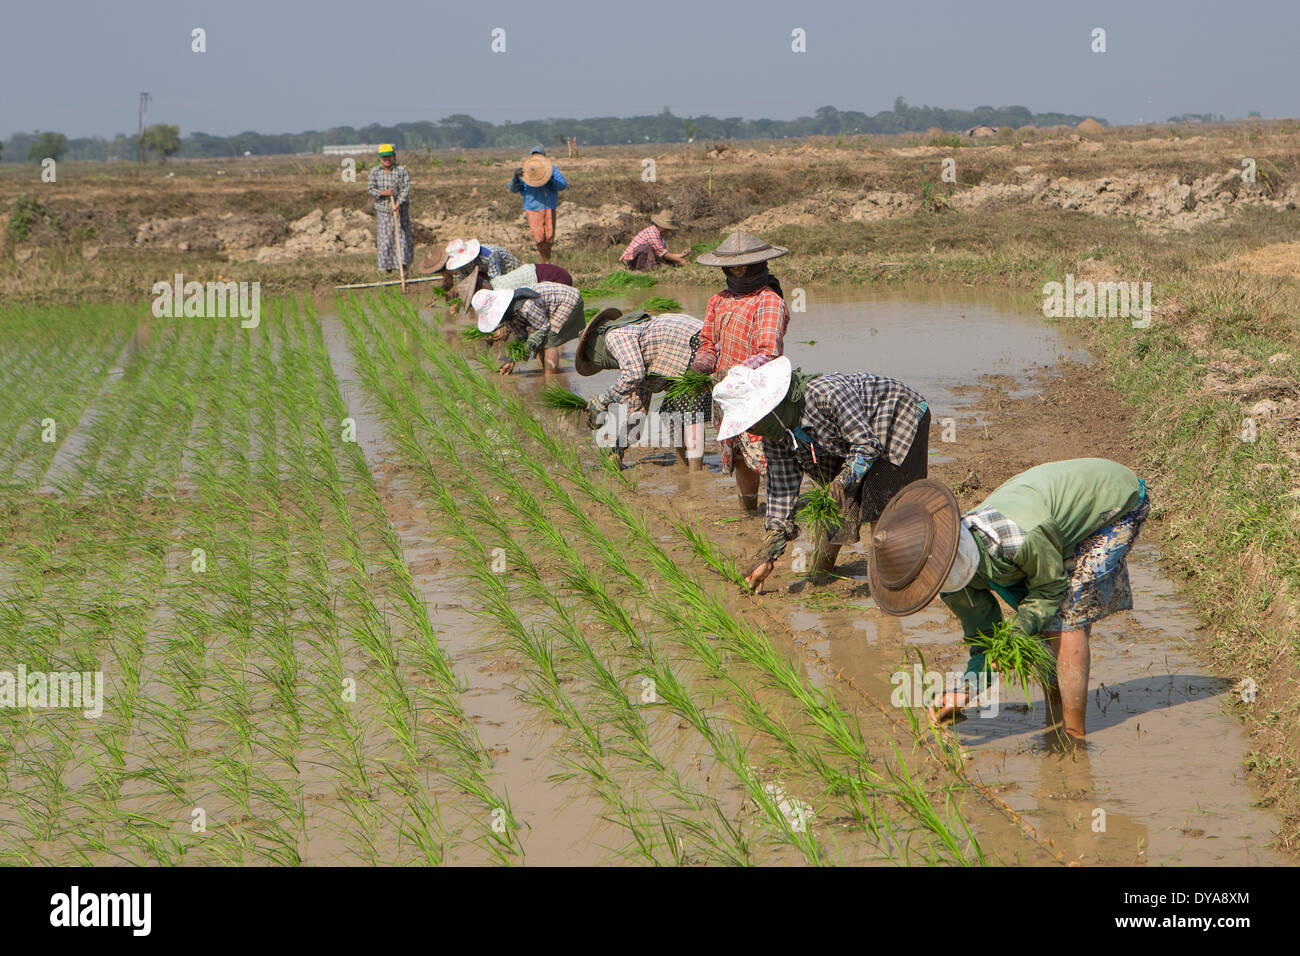 Mon, Myanmar, Burma, Asia, agriculture, farmers, hard, rice, traditional, work, working - Stock Image